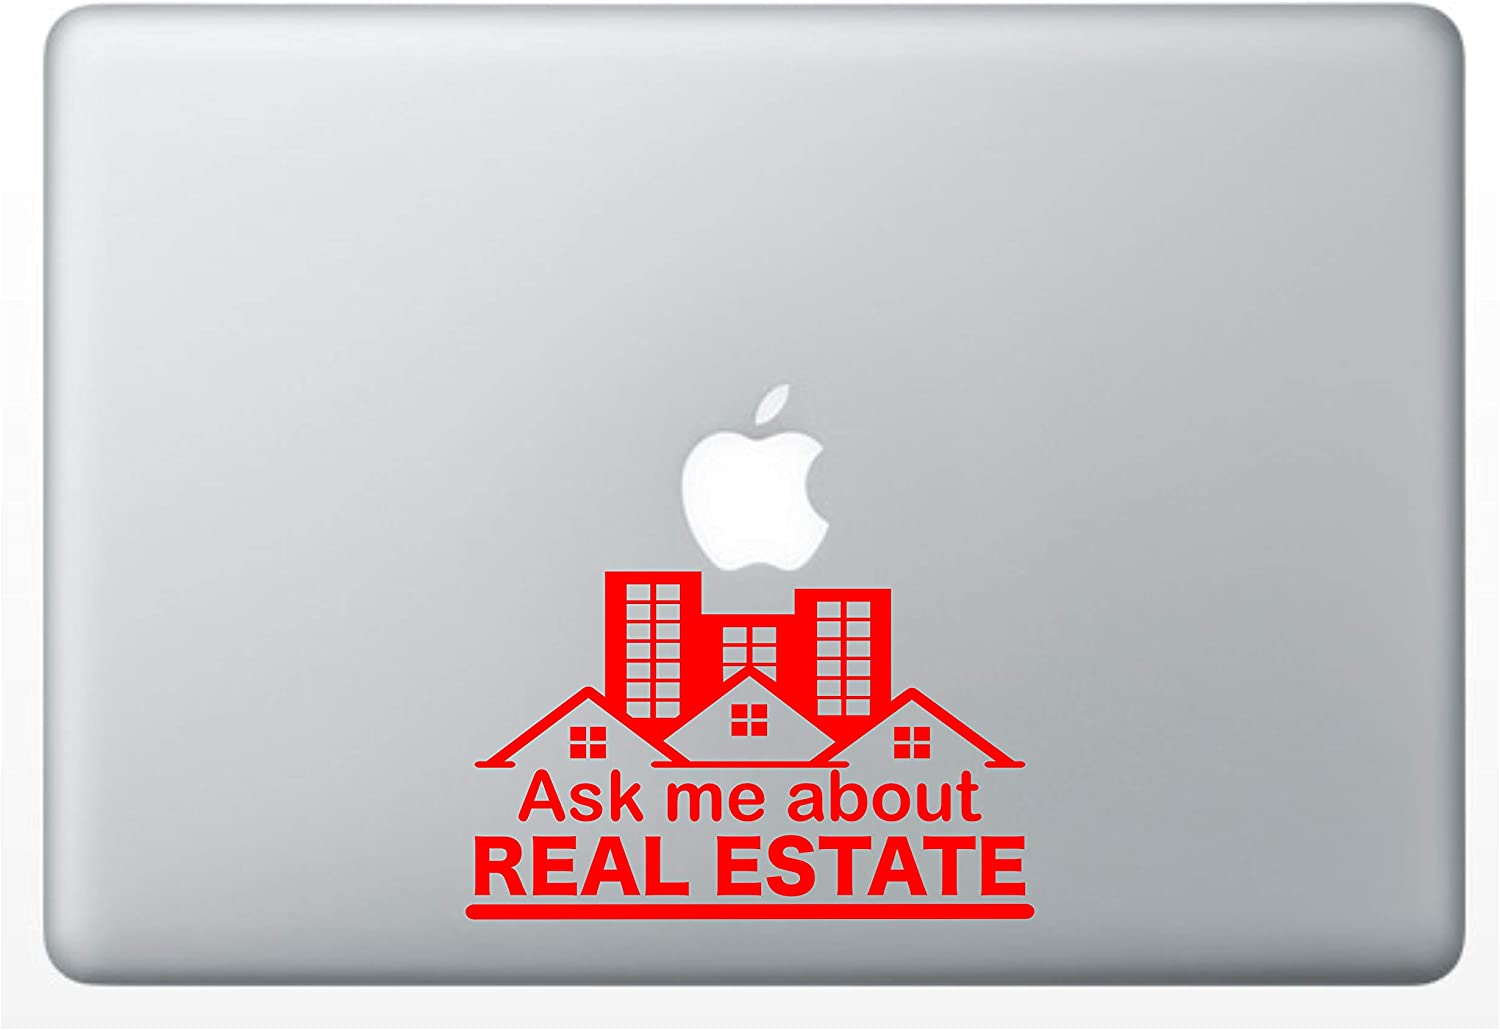 """Crazy4Decals Ask ME About Real Estate Decal Vinyl Sticker 20 Colors for Laptops, Ipads, Car Windows, Doors, Office Walls Realtor and Any Smooth Surface. 3 Different Sizes (Red, 6"""" Wide x 3.5"""" Tall)"""